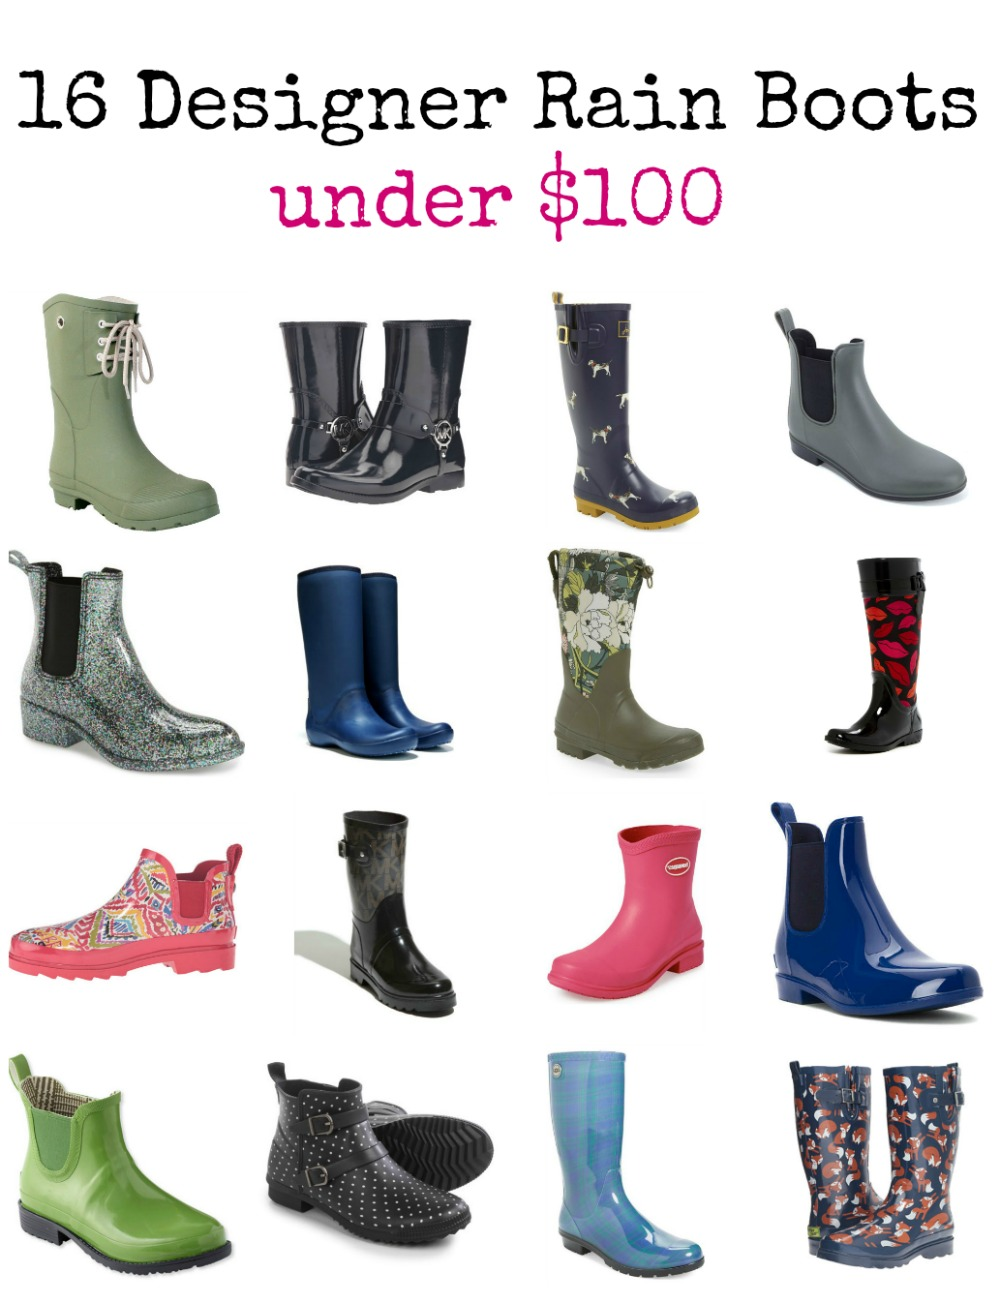 16 great designer rain boot styles that are all under $100